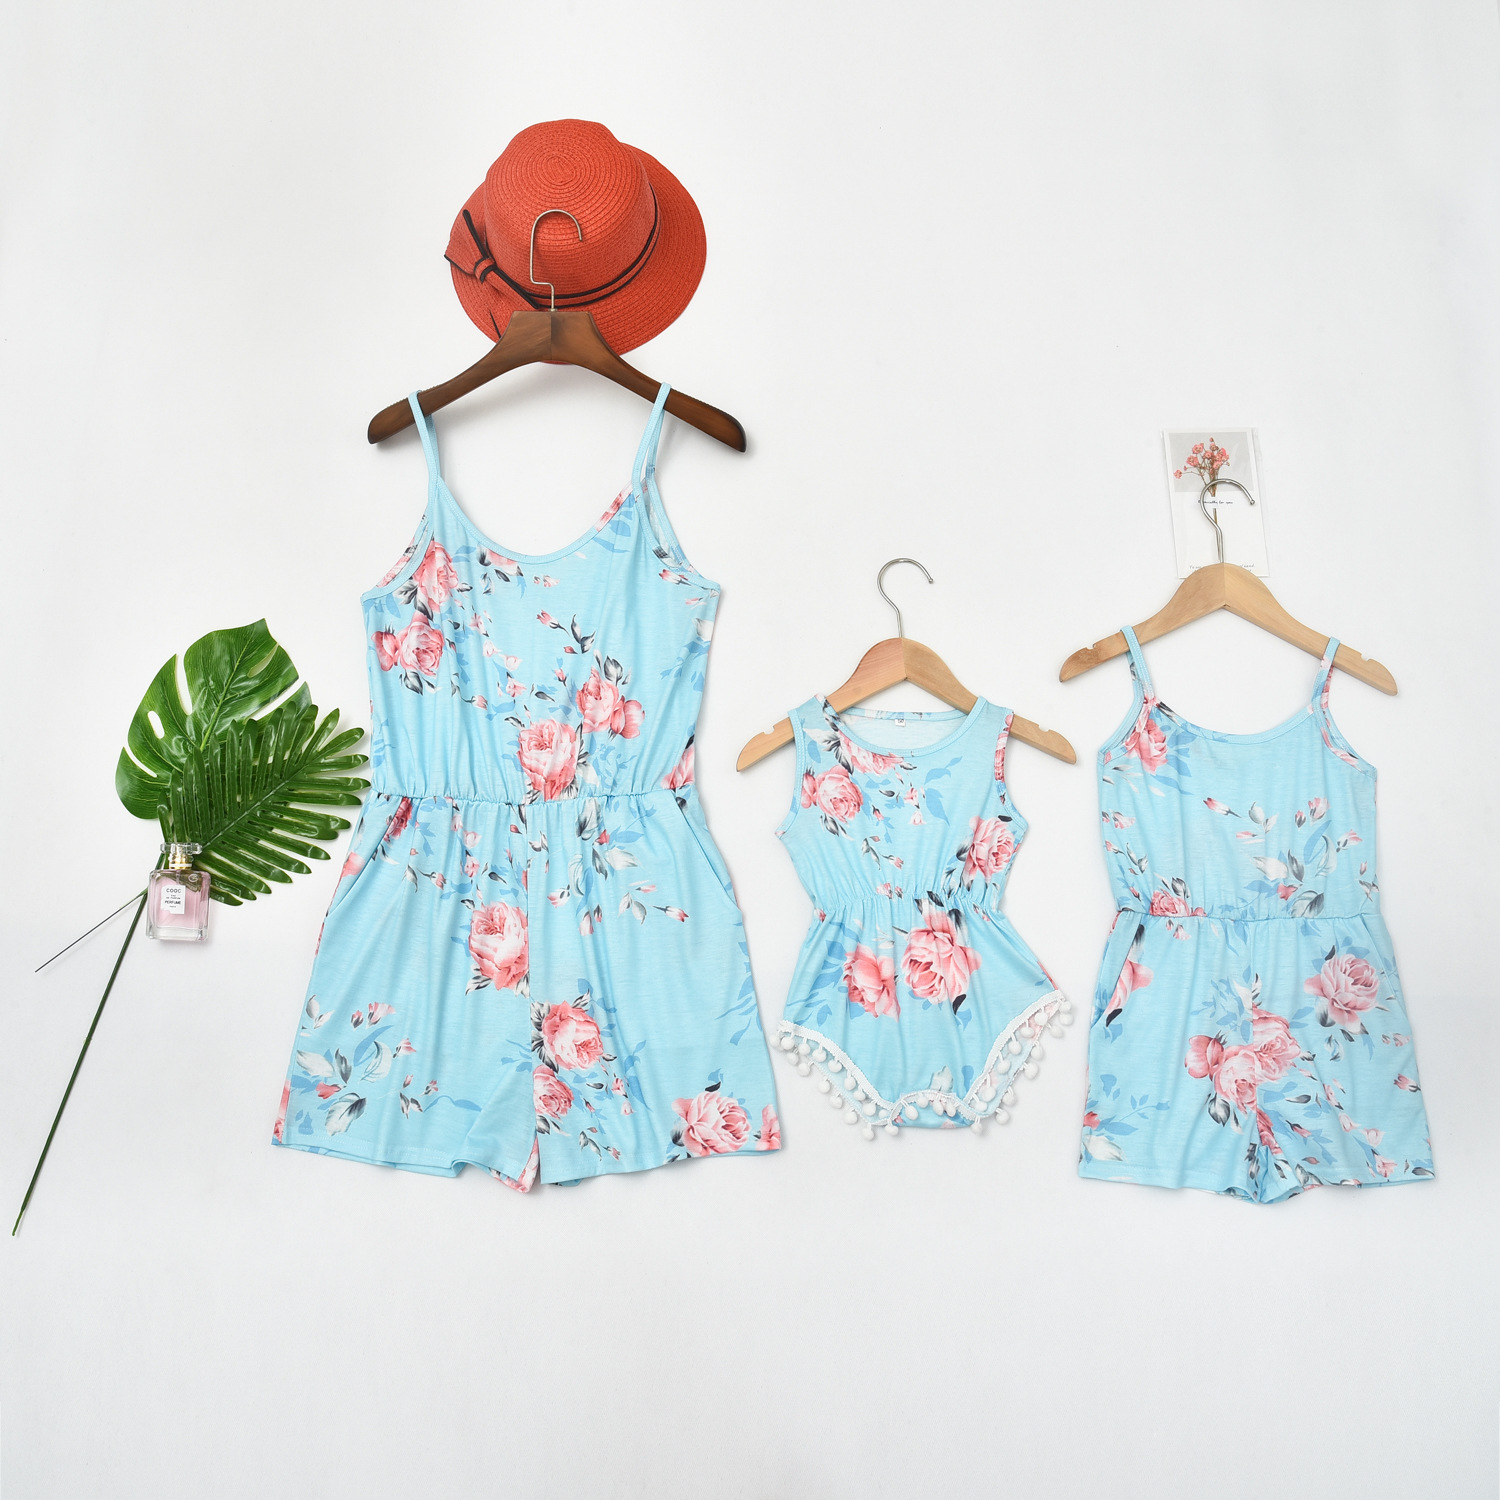 Tank Overall Pants Mother Daughter Dresses Family Look Floral Print Mommy And Me Matching Clothes Outfits Mom Mum And Baby Dress